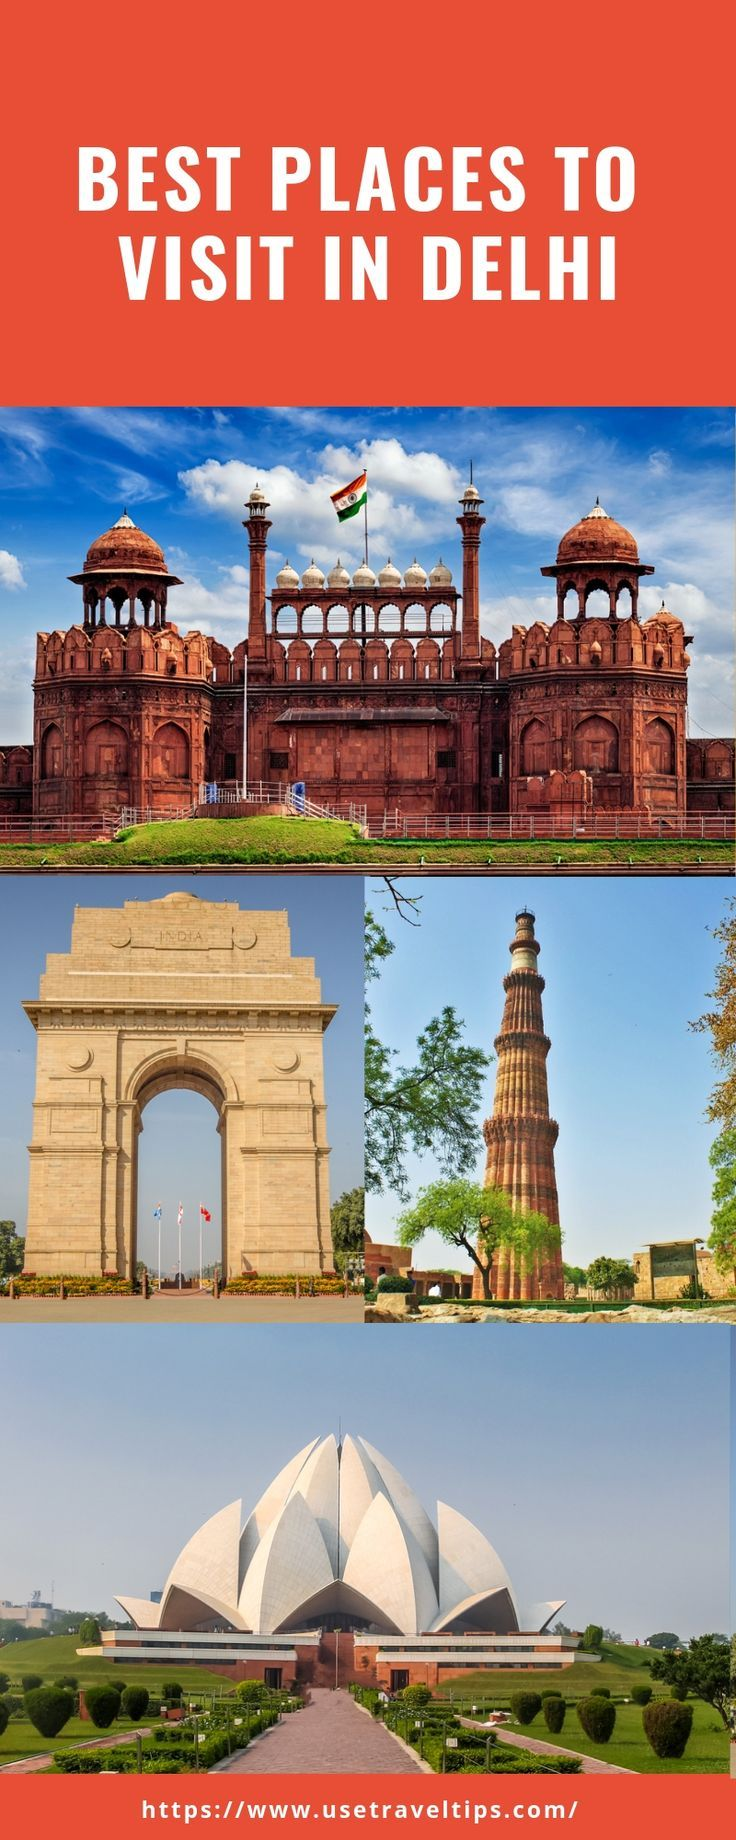 Top 10 Attractions To Visit In Delhi India Cool Places To Visit Travel Places To Visit